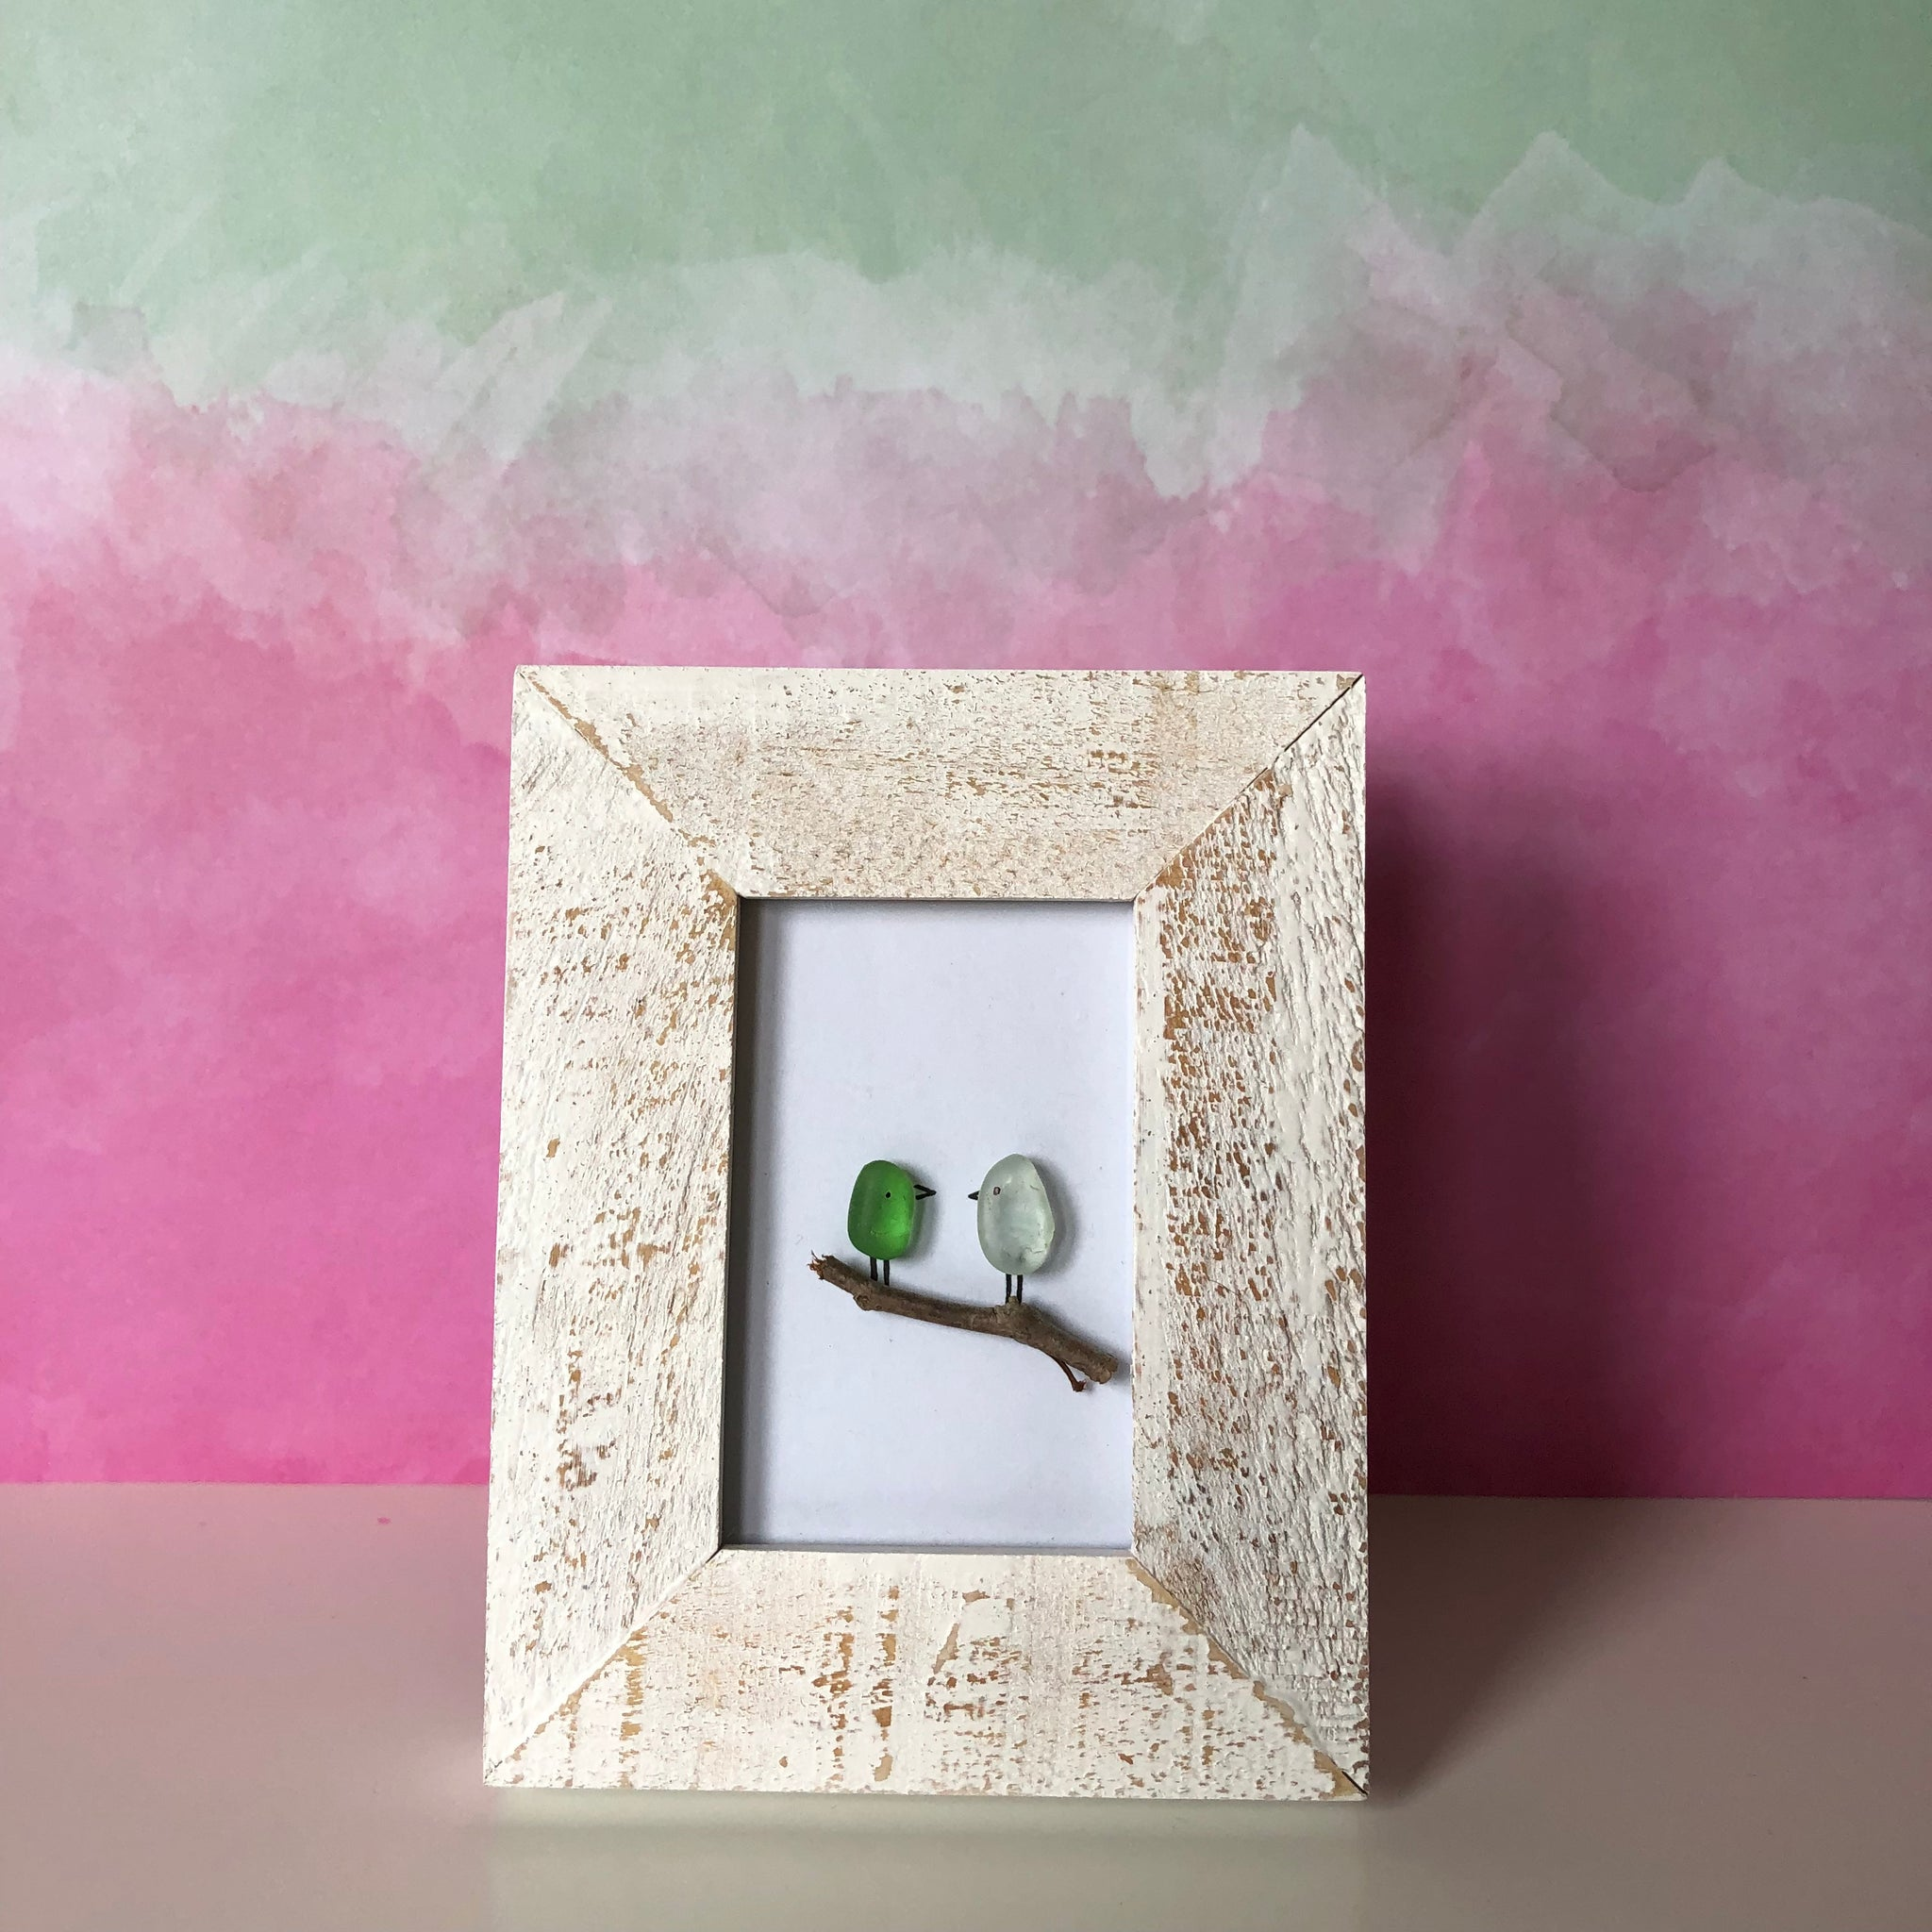 Tiny birds - Tiny Framed Seaglass Art